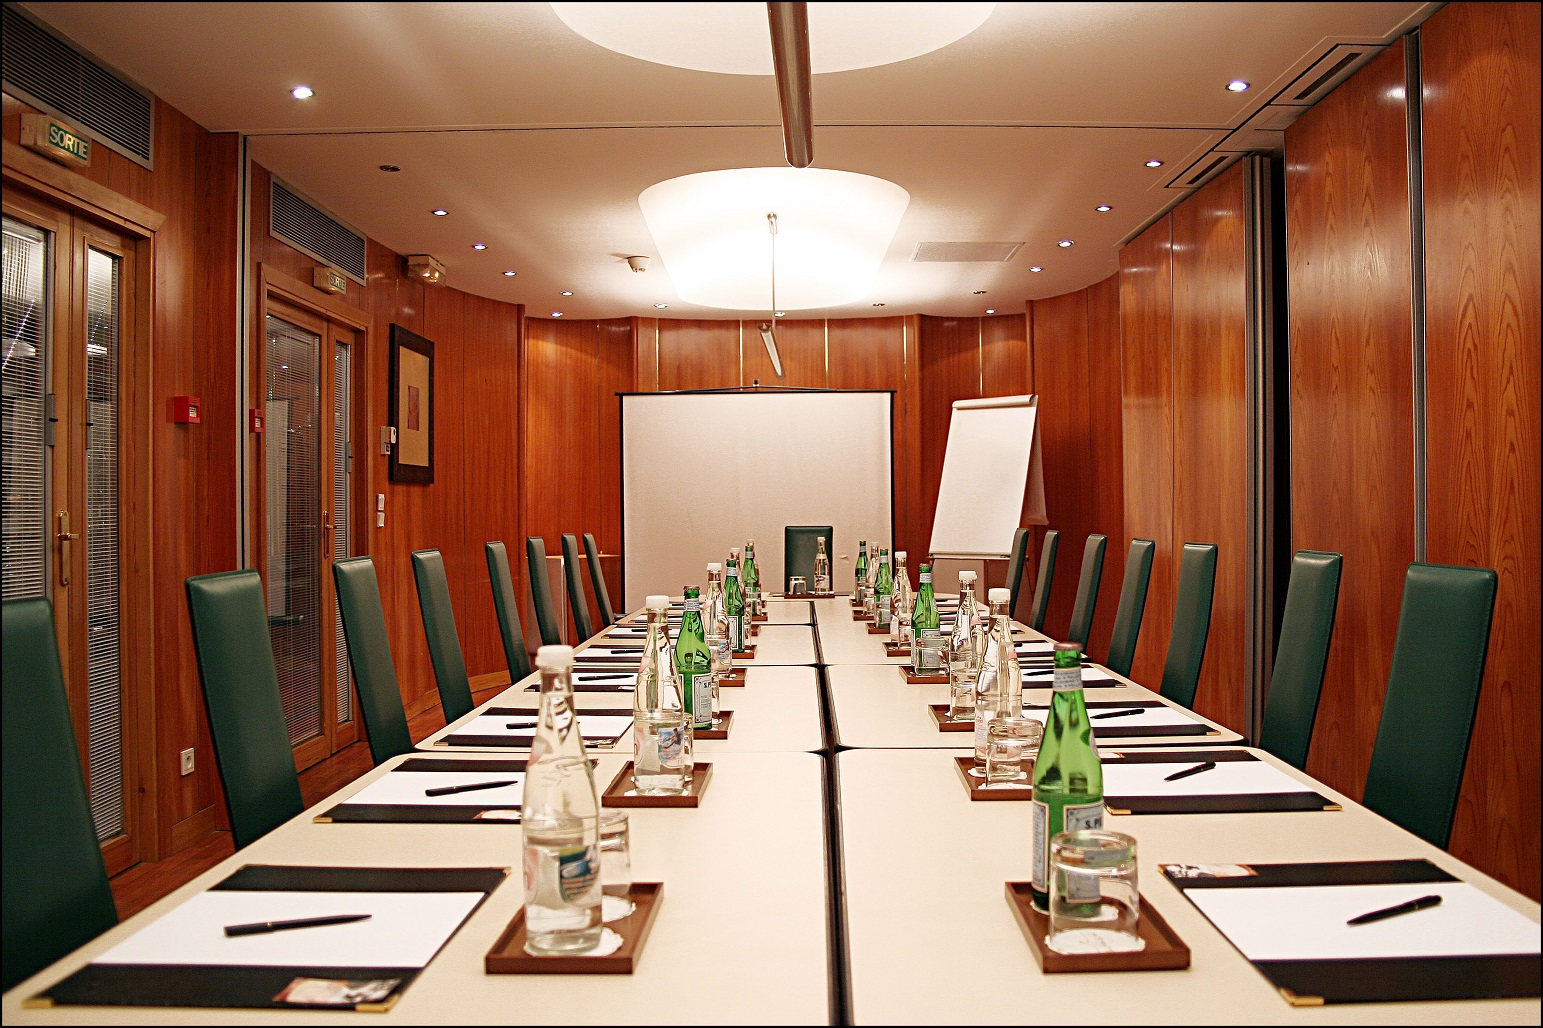 57/Seminaire/meeting_room_villa_luxembourg_paris.jpg